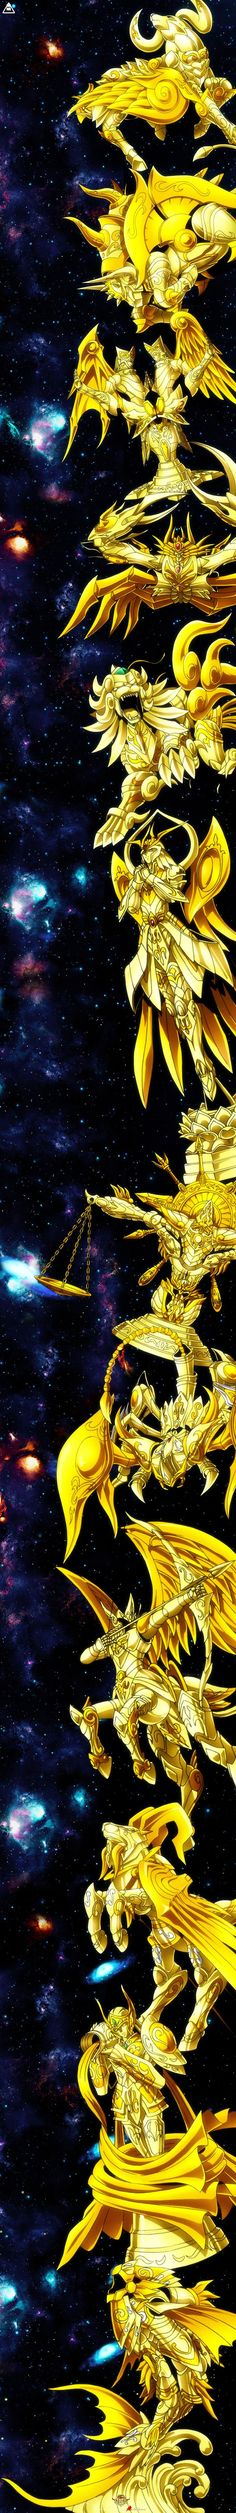 Saint Seiya Soul of Gold's Zodiac of Gold God Cloths Más Manga Anime, Anime Art, Knights Of The Zodiac, 3d Fantasy, Manga Comics, Fan Art, Digimon, Anime Love, Anime Characters